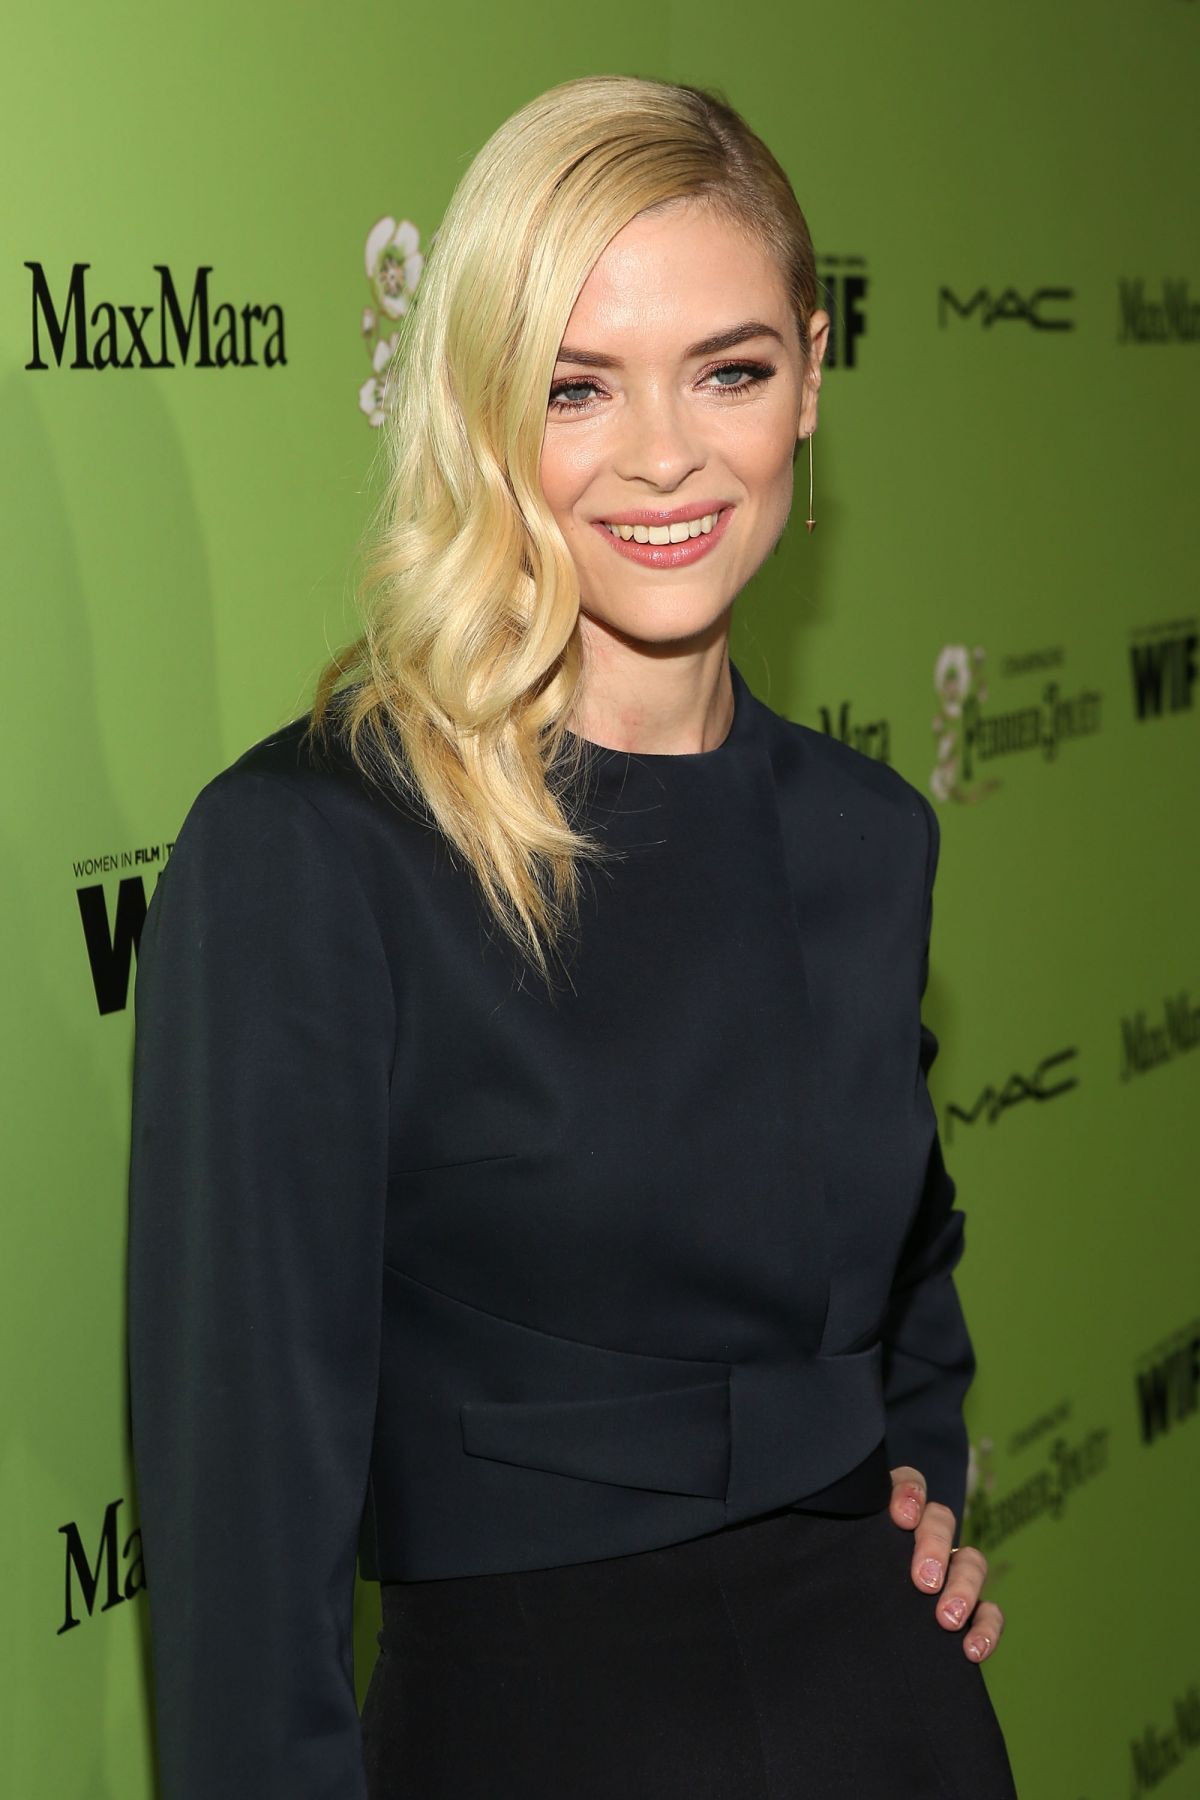 JAIME KING at Women in Film Pre-oscar Cocktail in West Hollywood